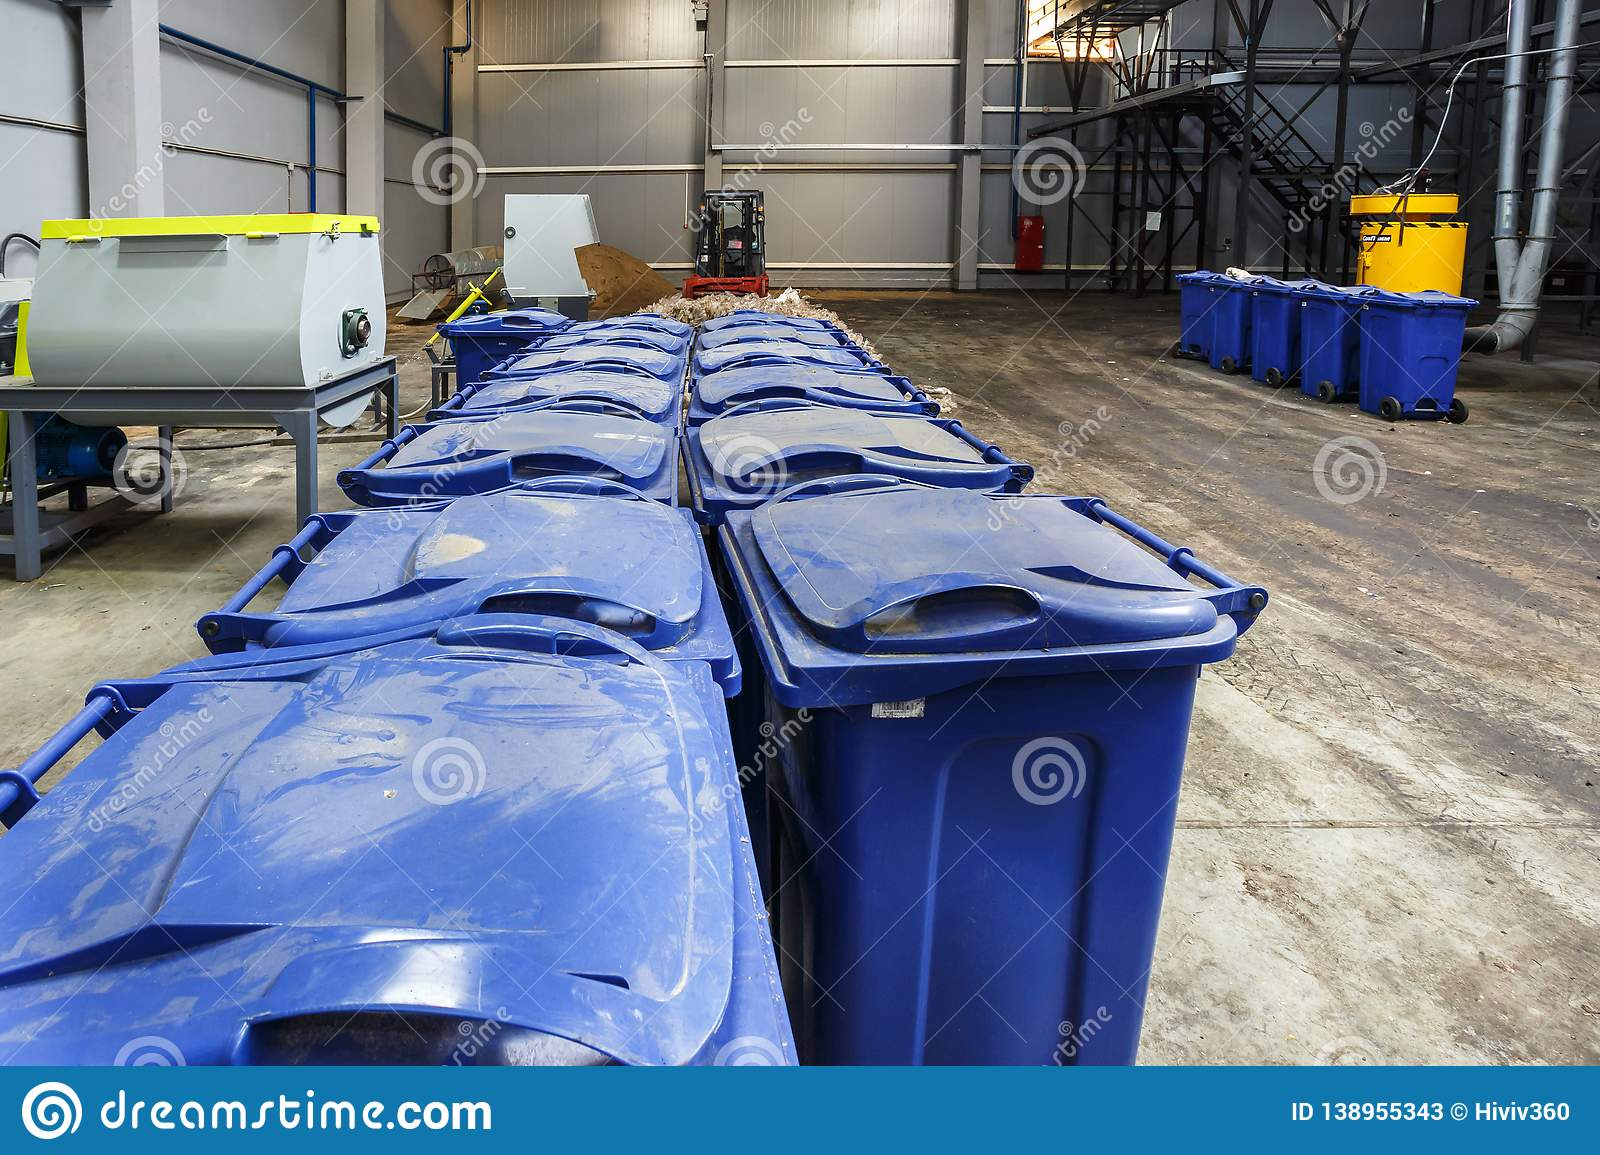 Separate garbage collection. Equipment for pressing debris sorting material to be processed in a modern waste recycling plant